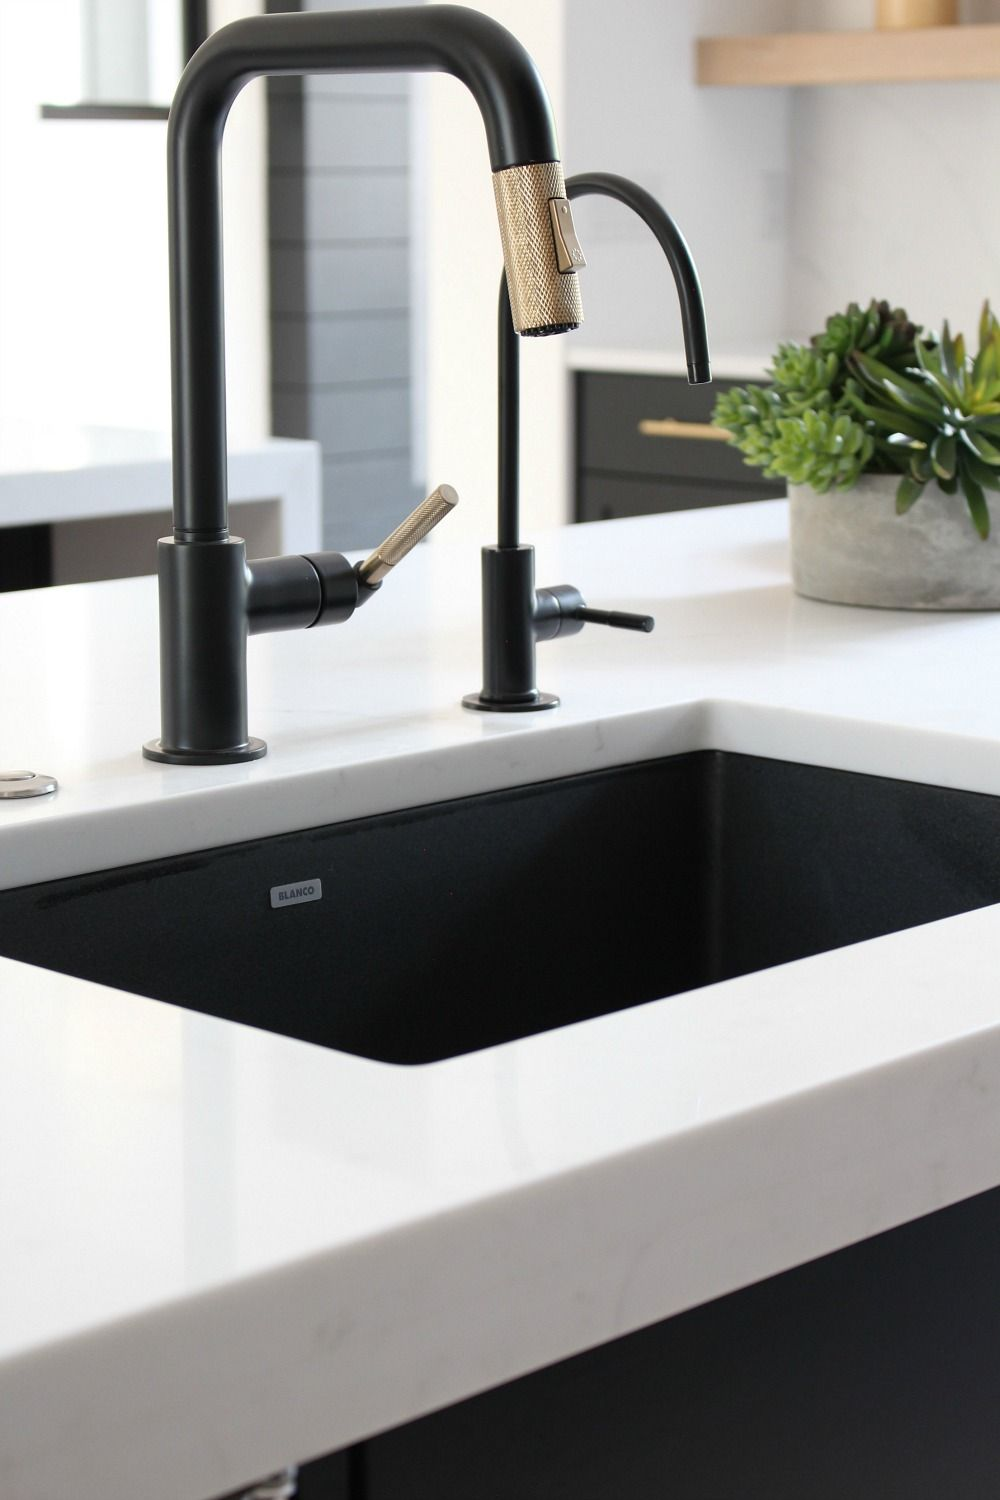 Designer and Blogger Shauna of The House of Silver Lining features BLANCO in her gorgeous home remodel | Kitchen sink design, Drop in kitchen sink, Sink design